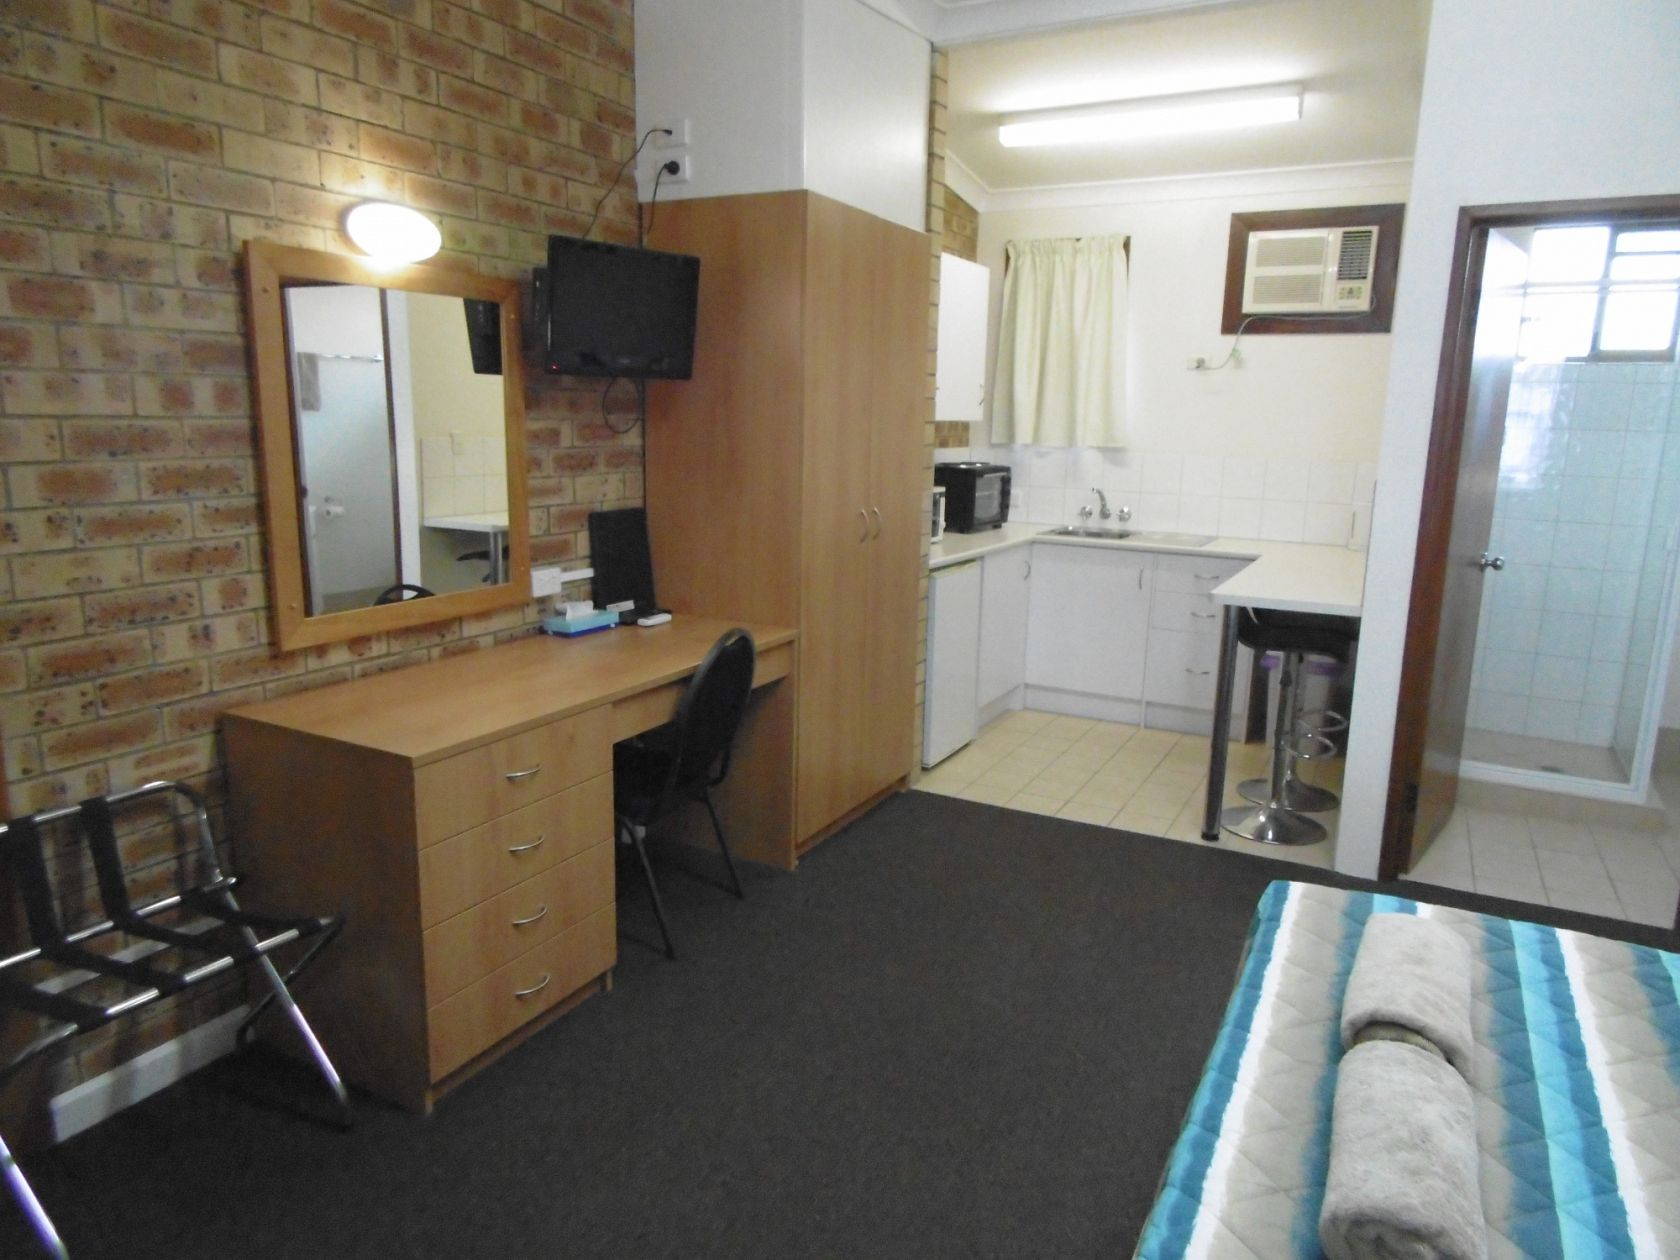 South Burnett Leasehold Motel, Only 2 hours from the Sunshine Coast